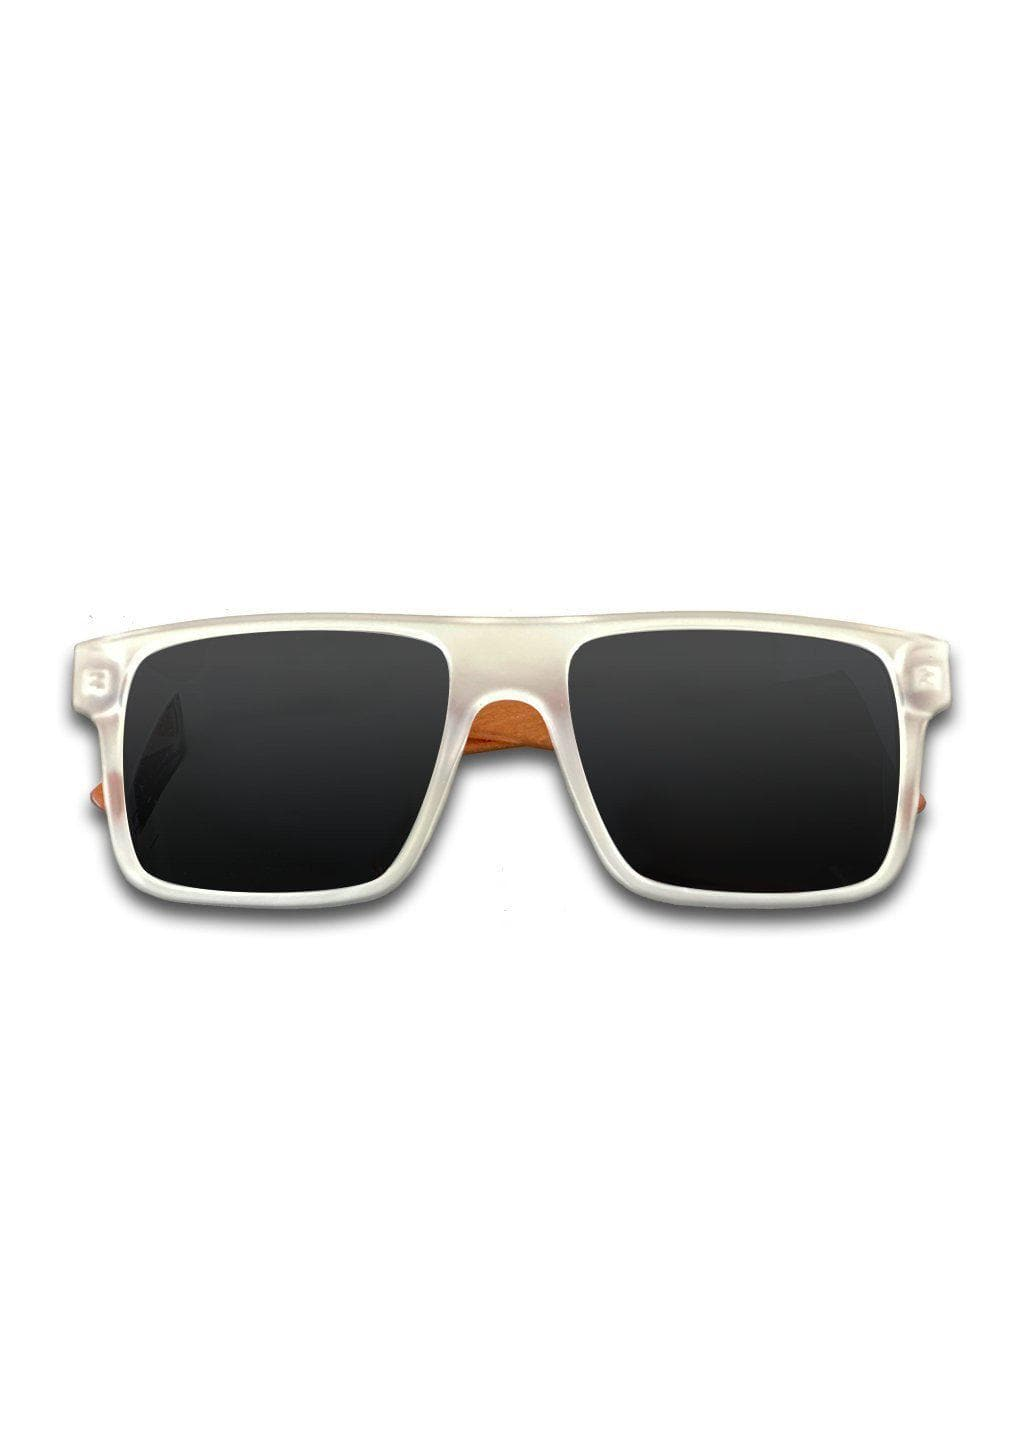 Eyewood Square - Blake - Modern design with silver mirror lenses and clear front.